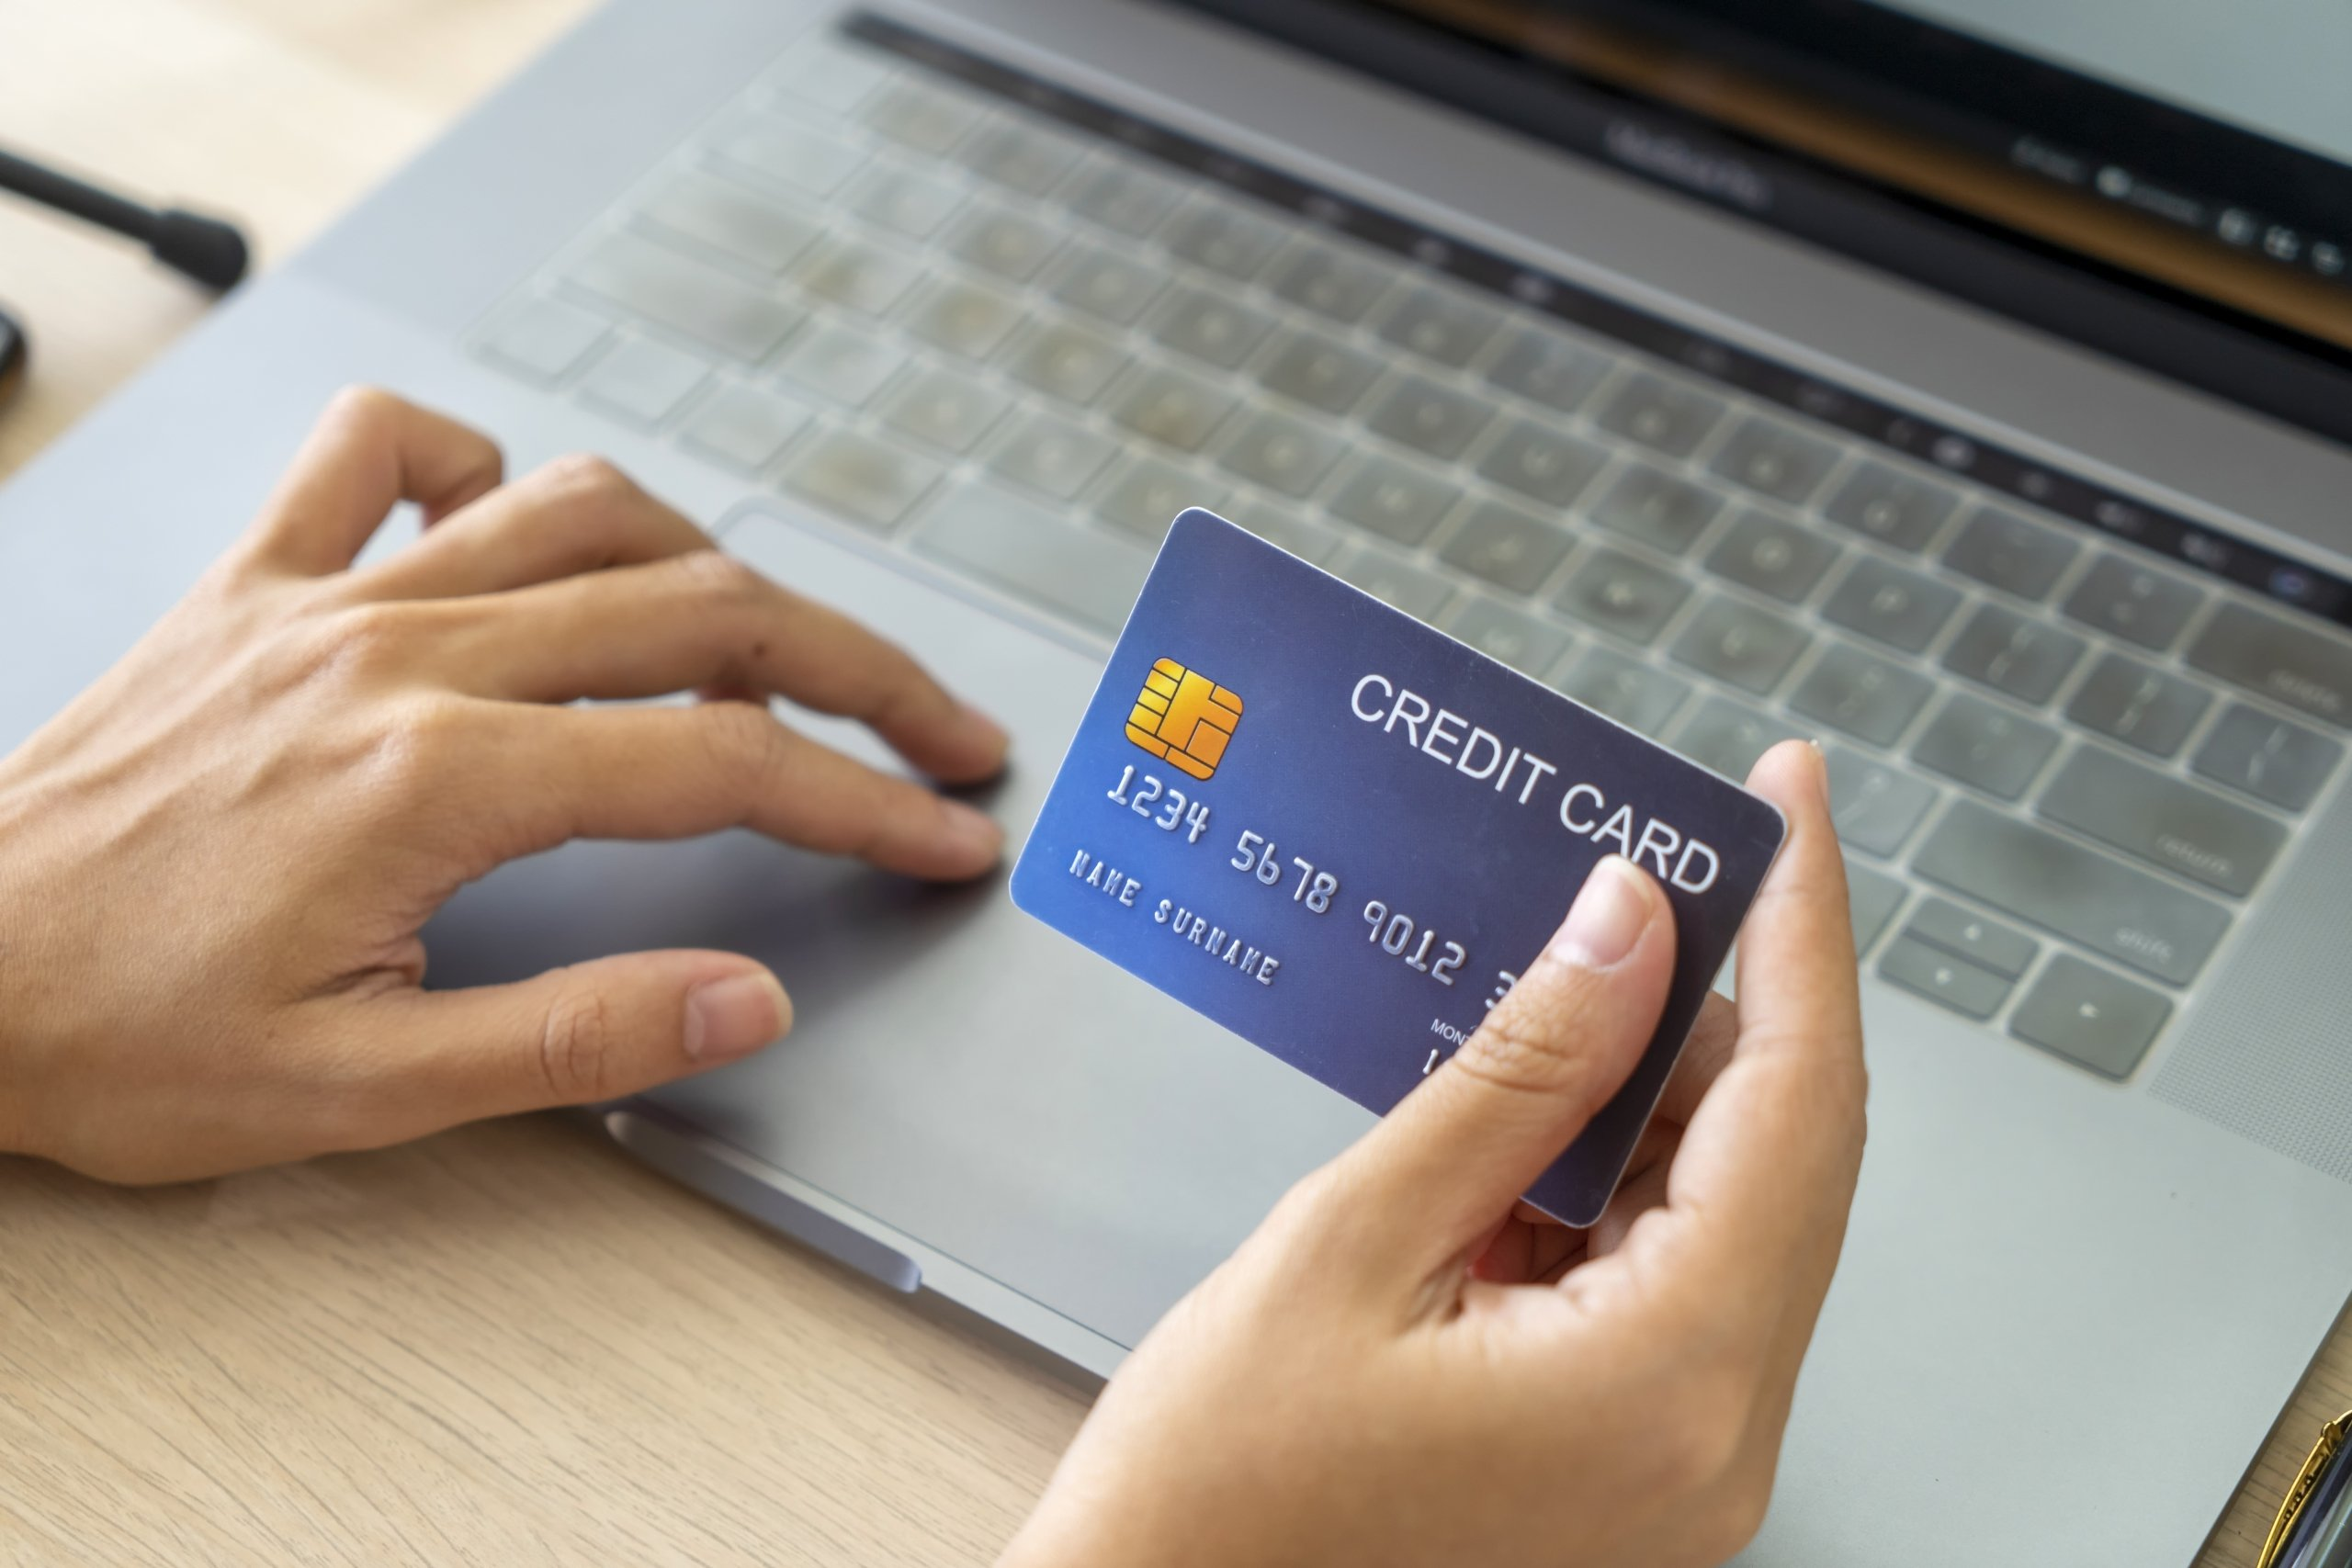 A person checking the online balance on a credit card